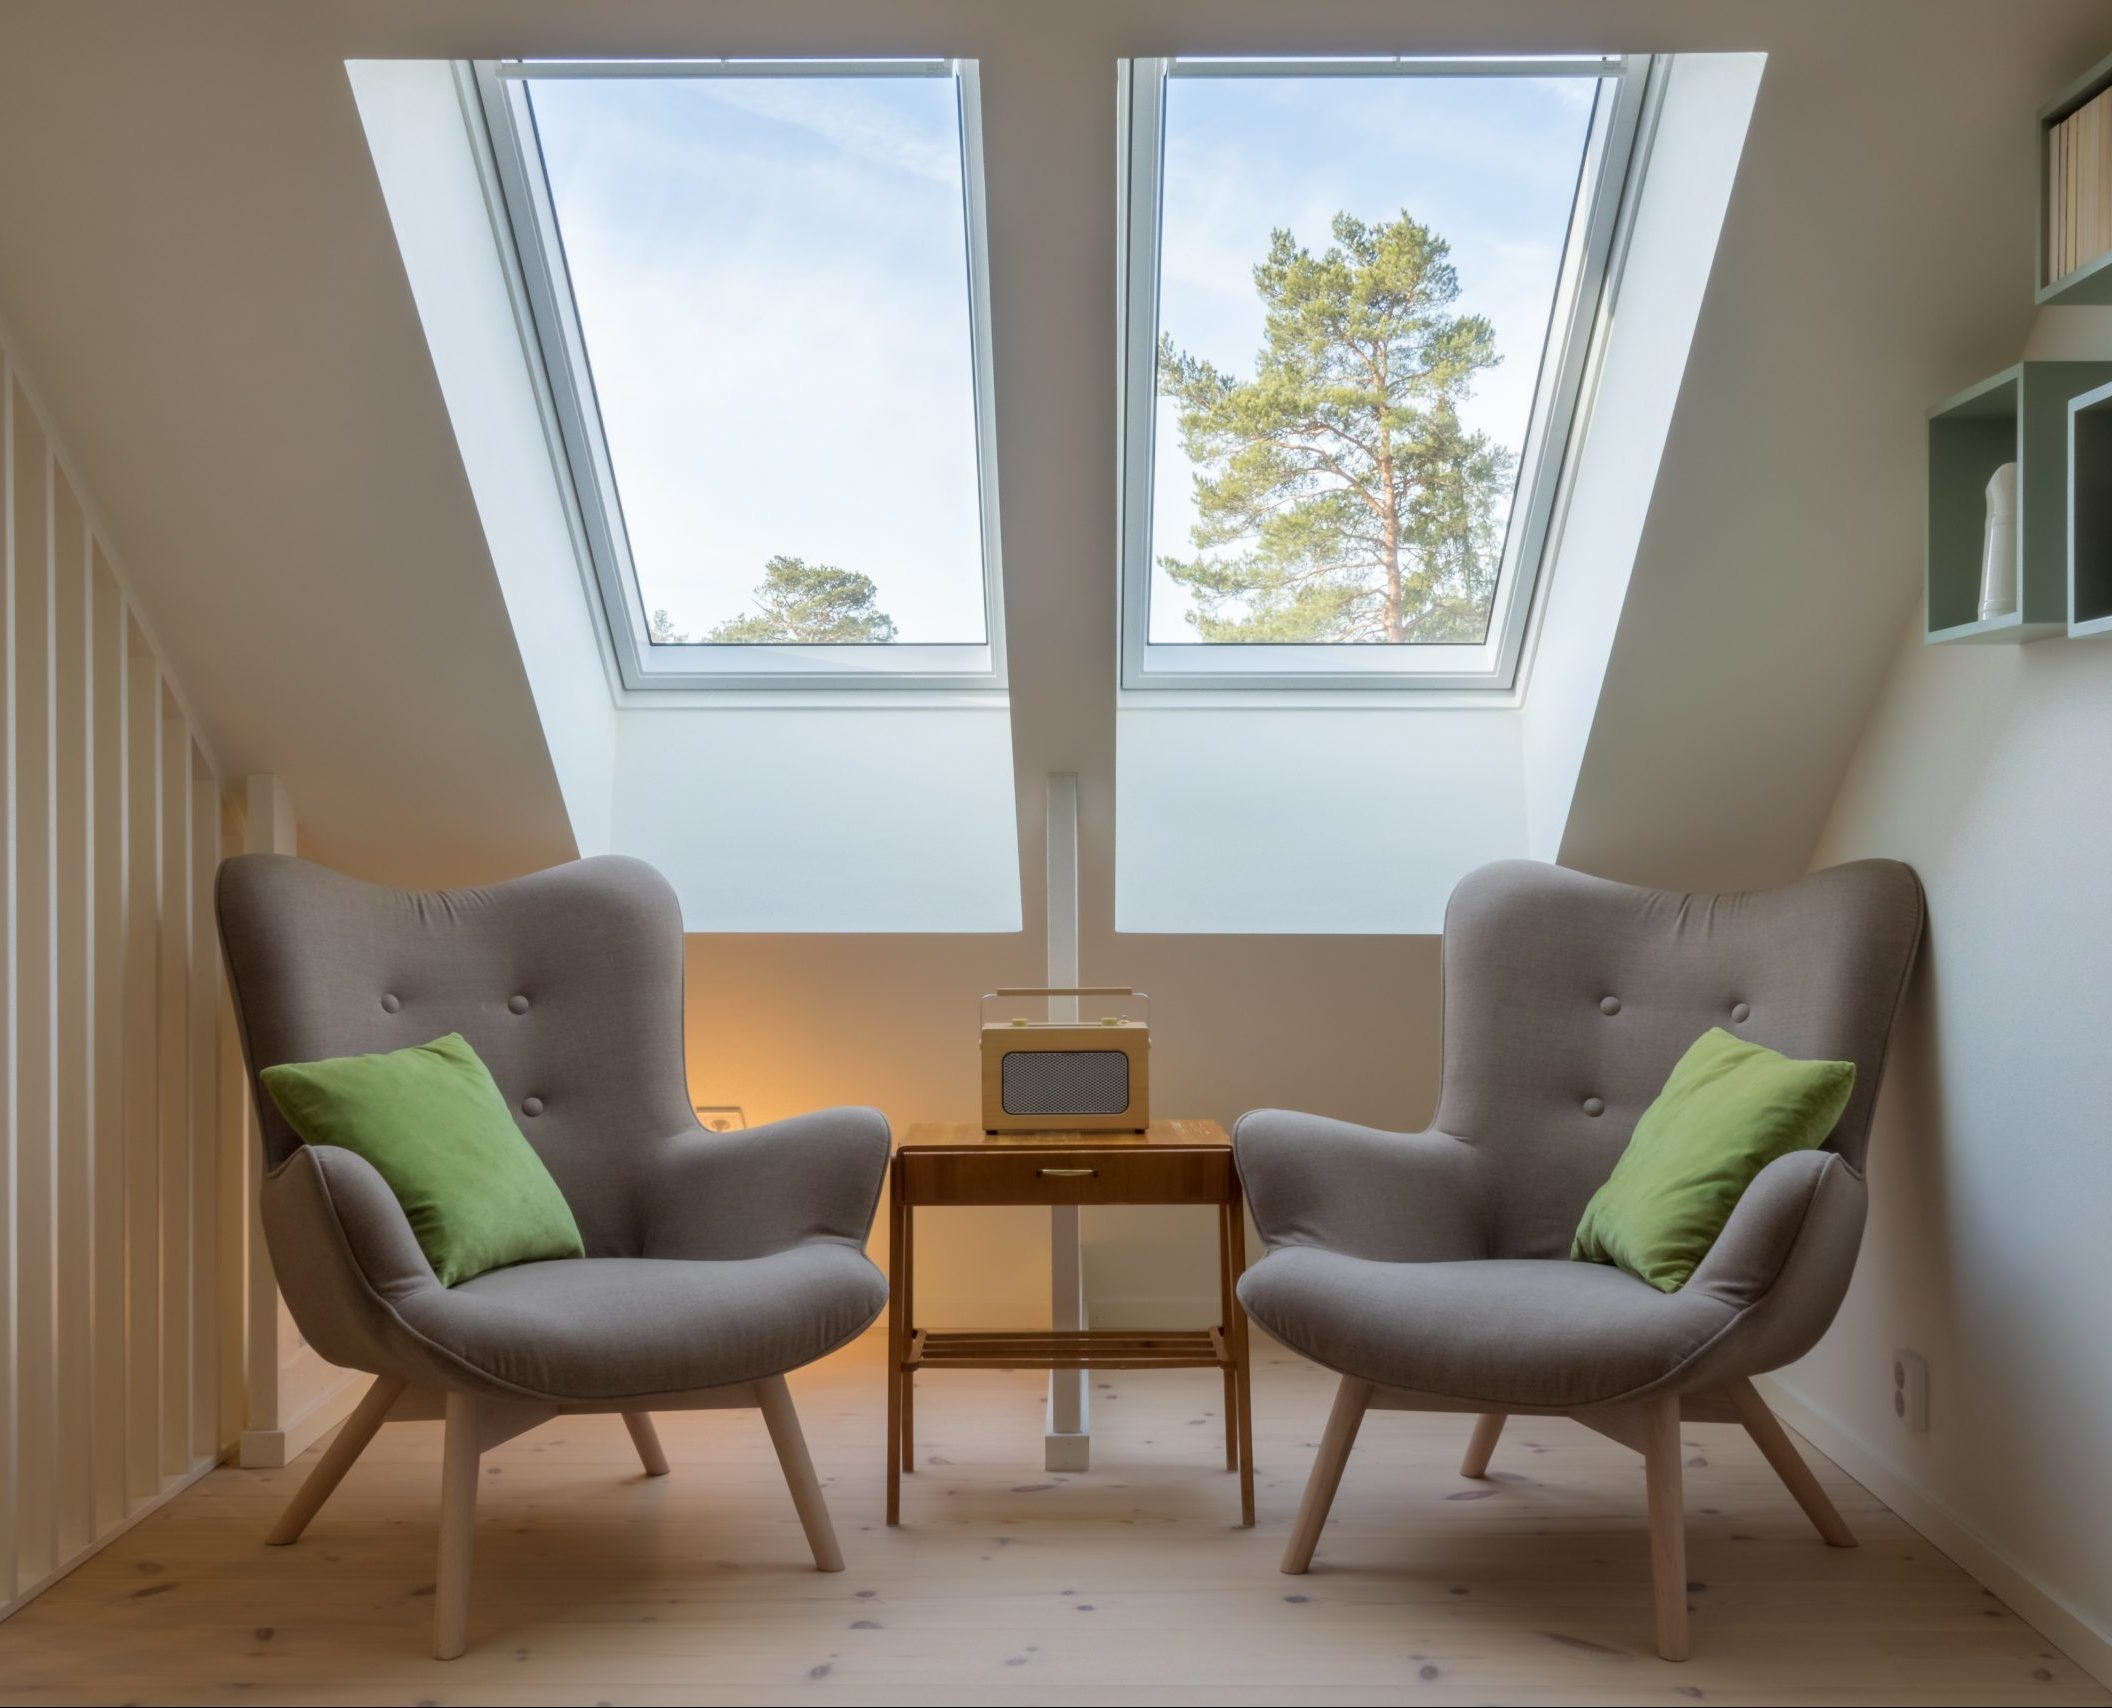 Solatube skylight in a common area of a house with chairs.